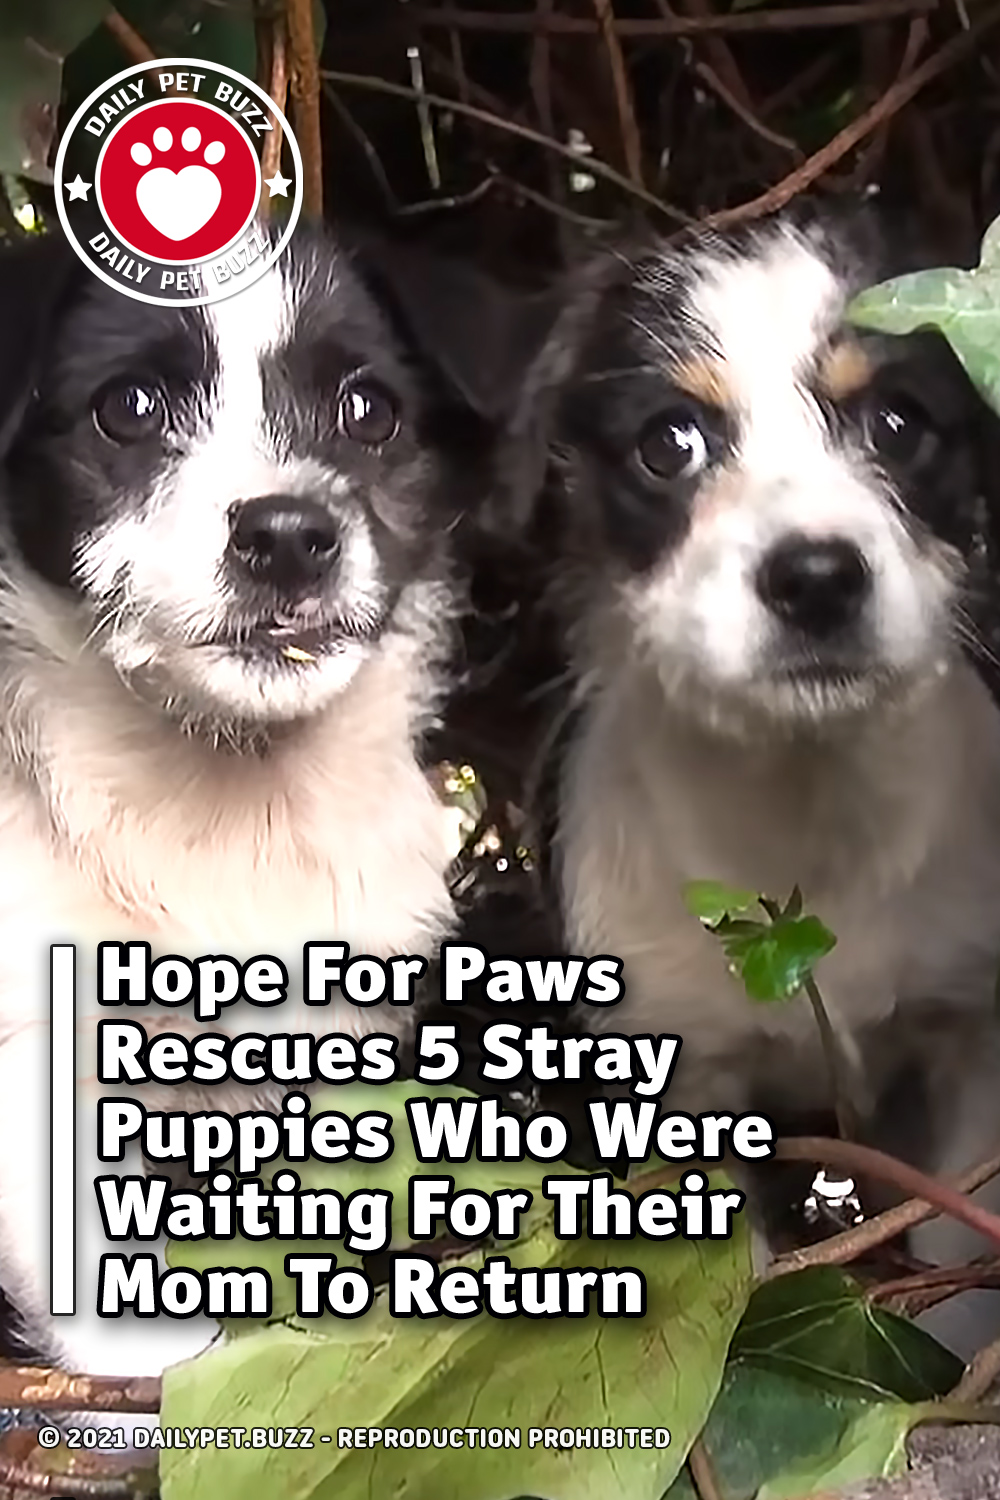 Hope For Paws Rescues 5 Stray Puppies Who Were Waiting For Their Mom To Return